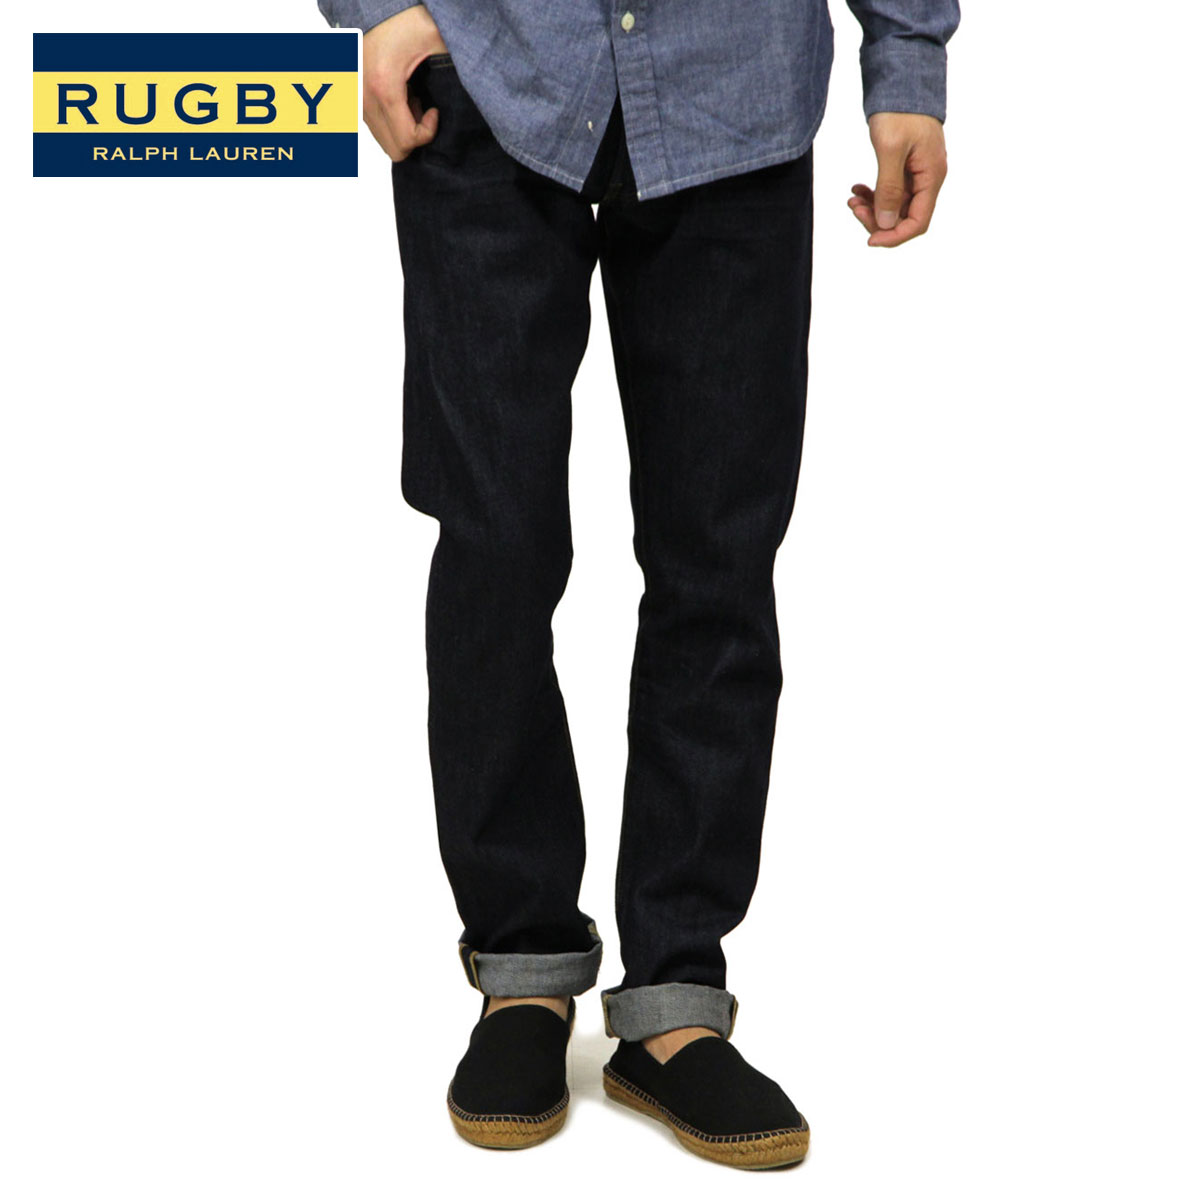 Ralph Lauren Rugby genuine, these jeans Vintage Slim Resin Jean A07B B1C C2D D1E E07F fs3gm10P14Nov13